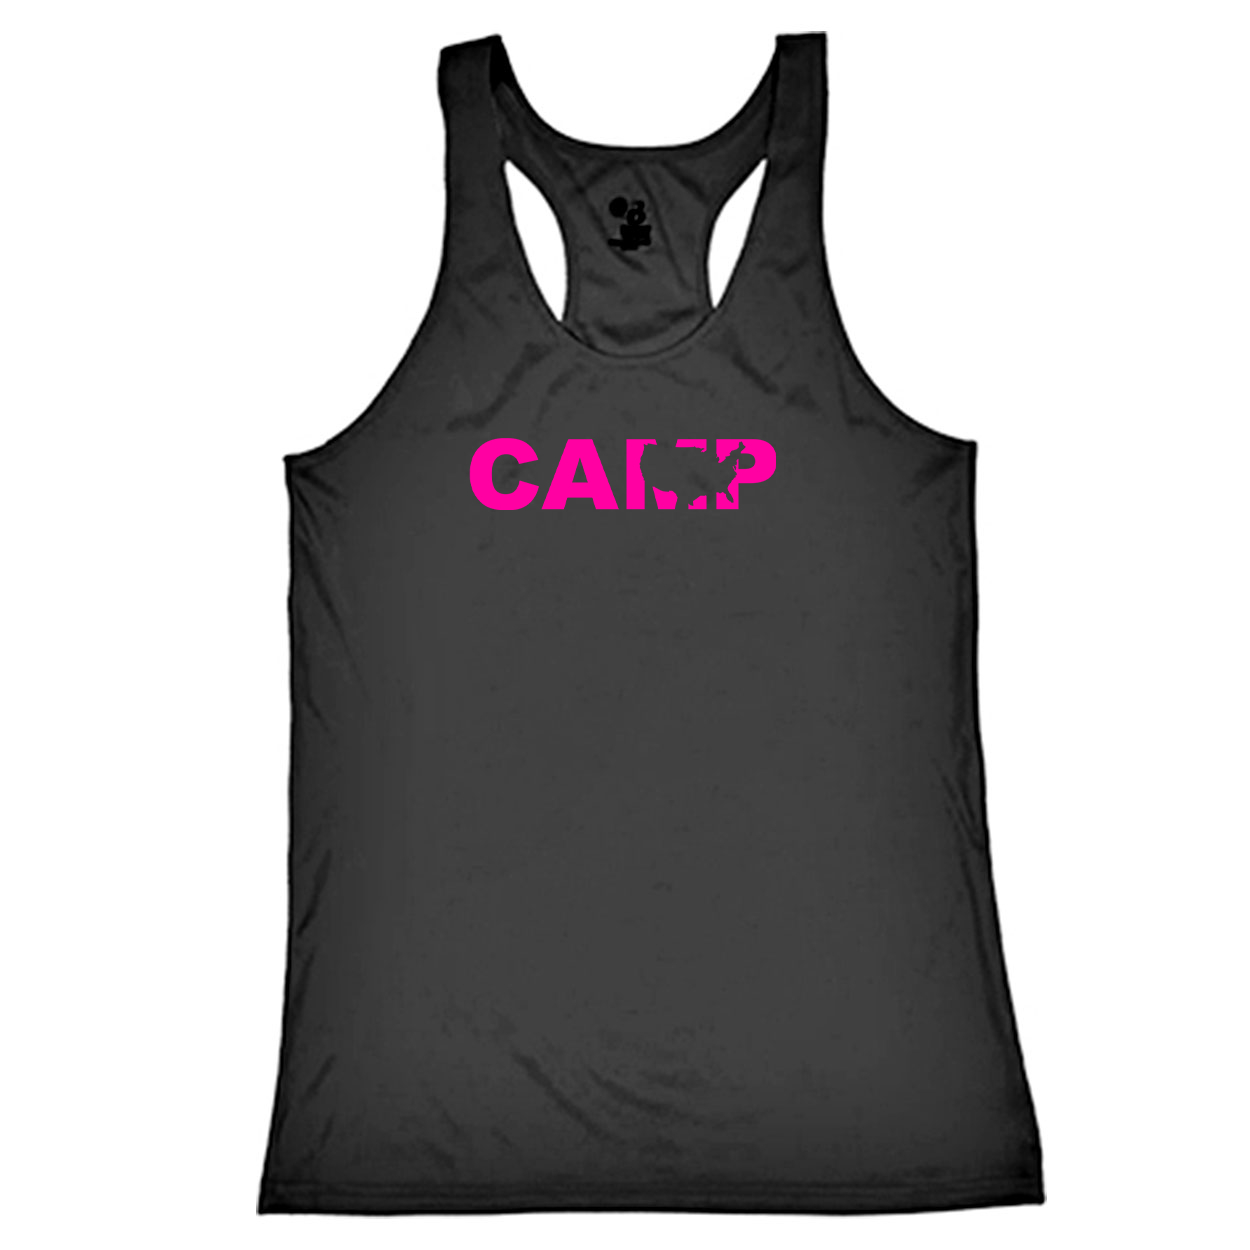 Camp United States Classic Youth Girls Performance Racerback Tank Top Black (Pink Logo)